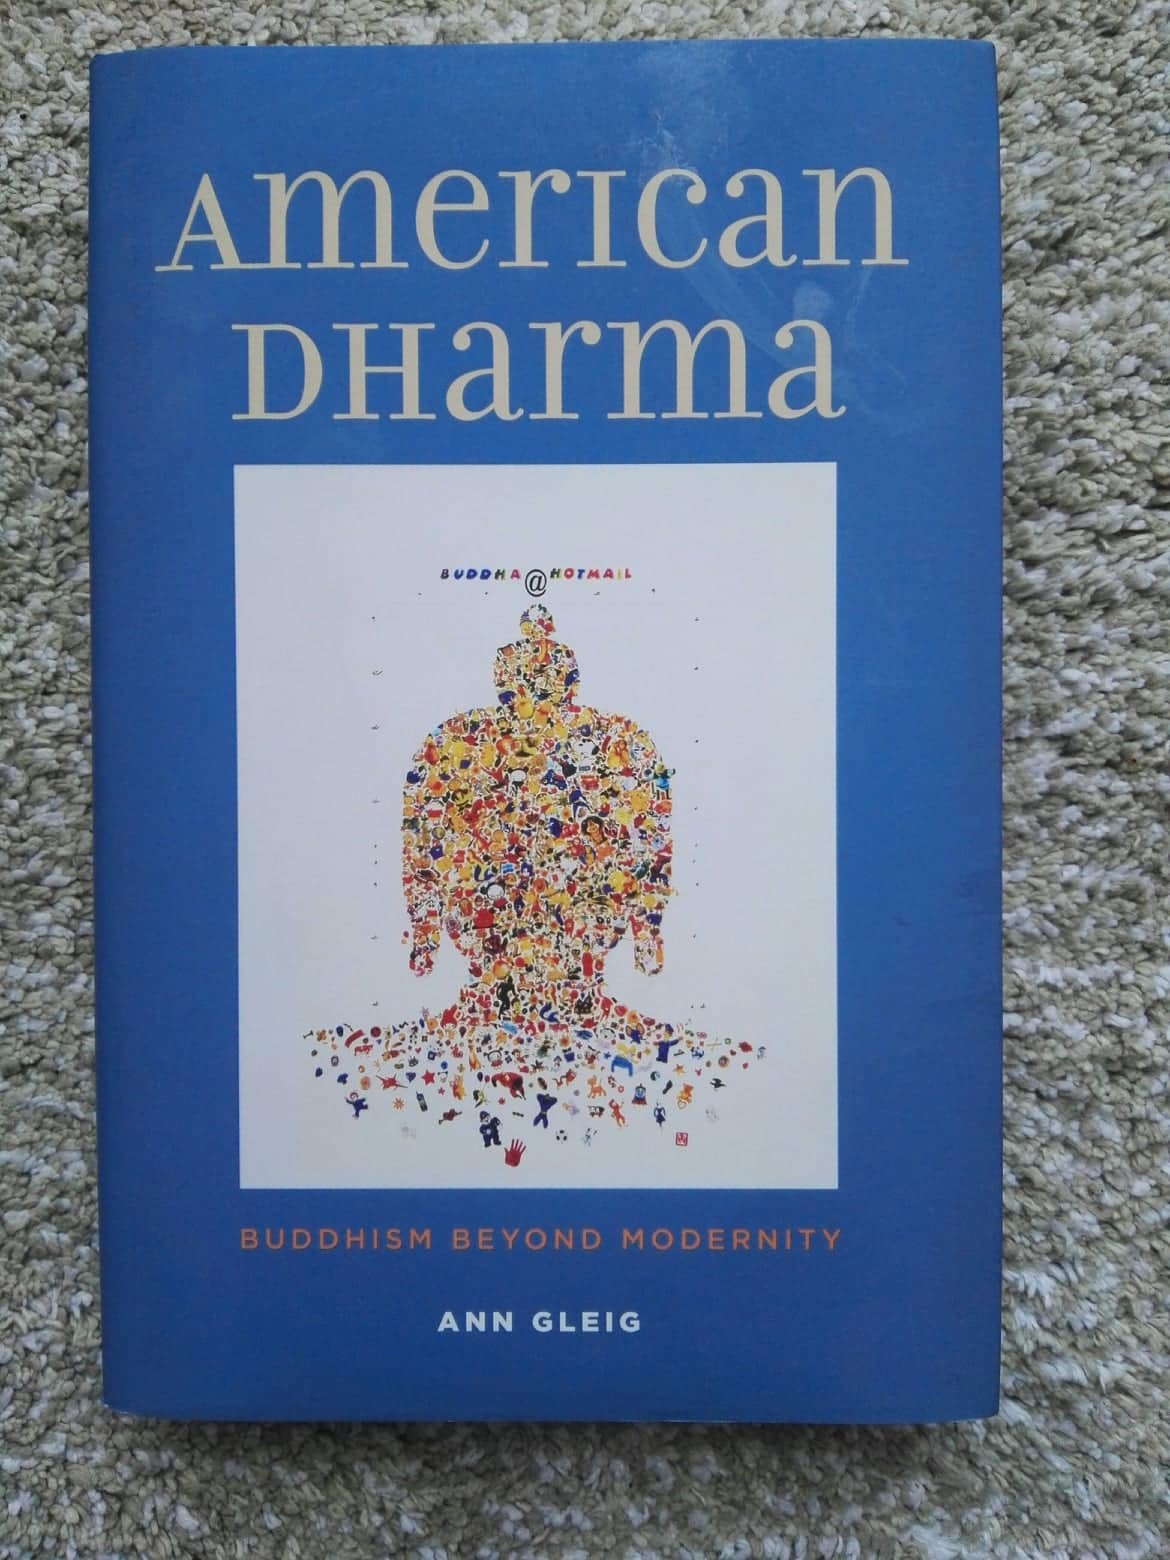 Rounding up with post-modernity: Ann Gleig on American